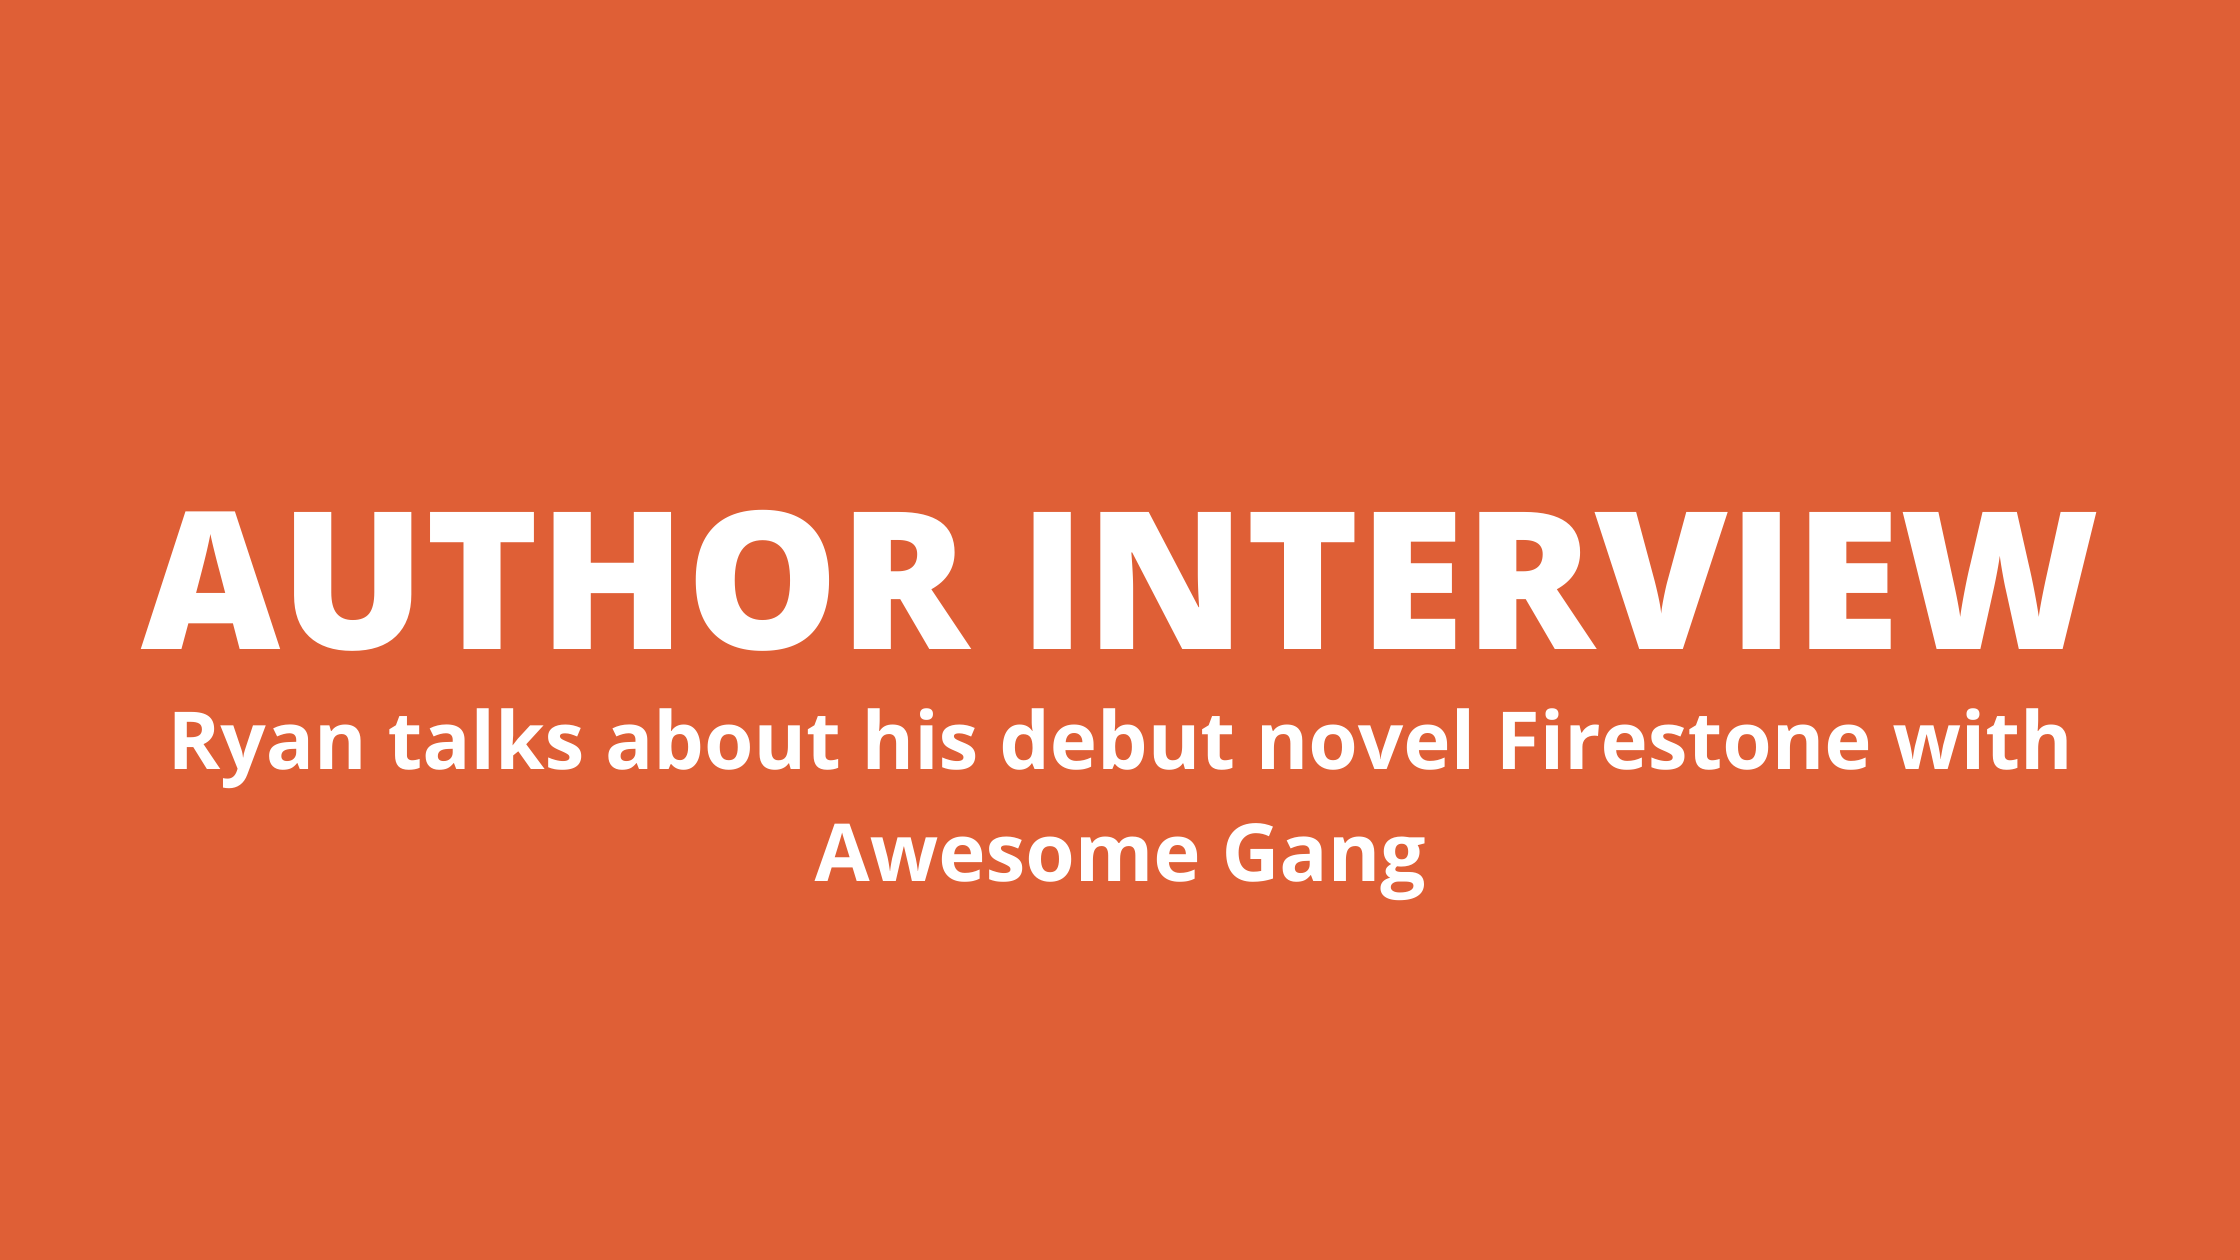 ryan carriere,awesome gang author interview,awesome gang, Author Interview – Awesome Gang, RYAN CARRIERE